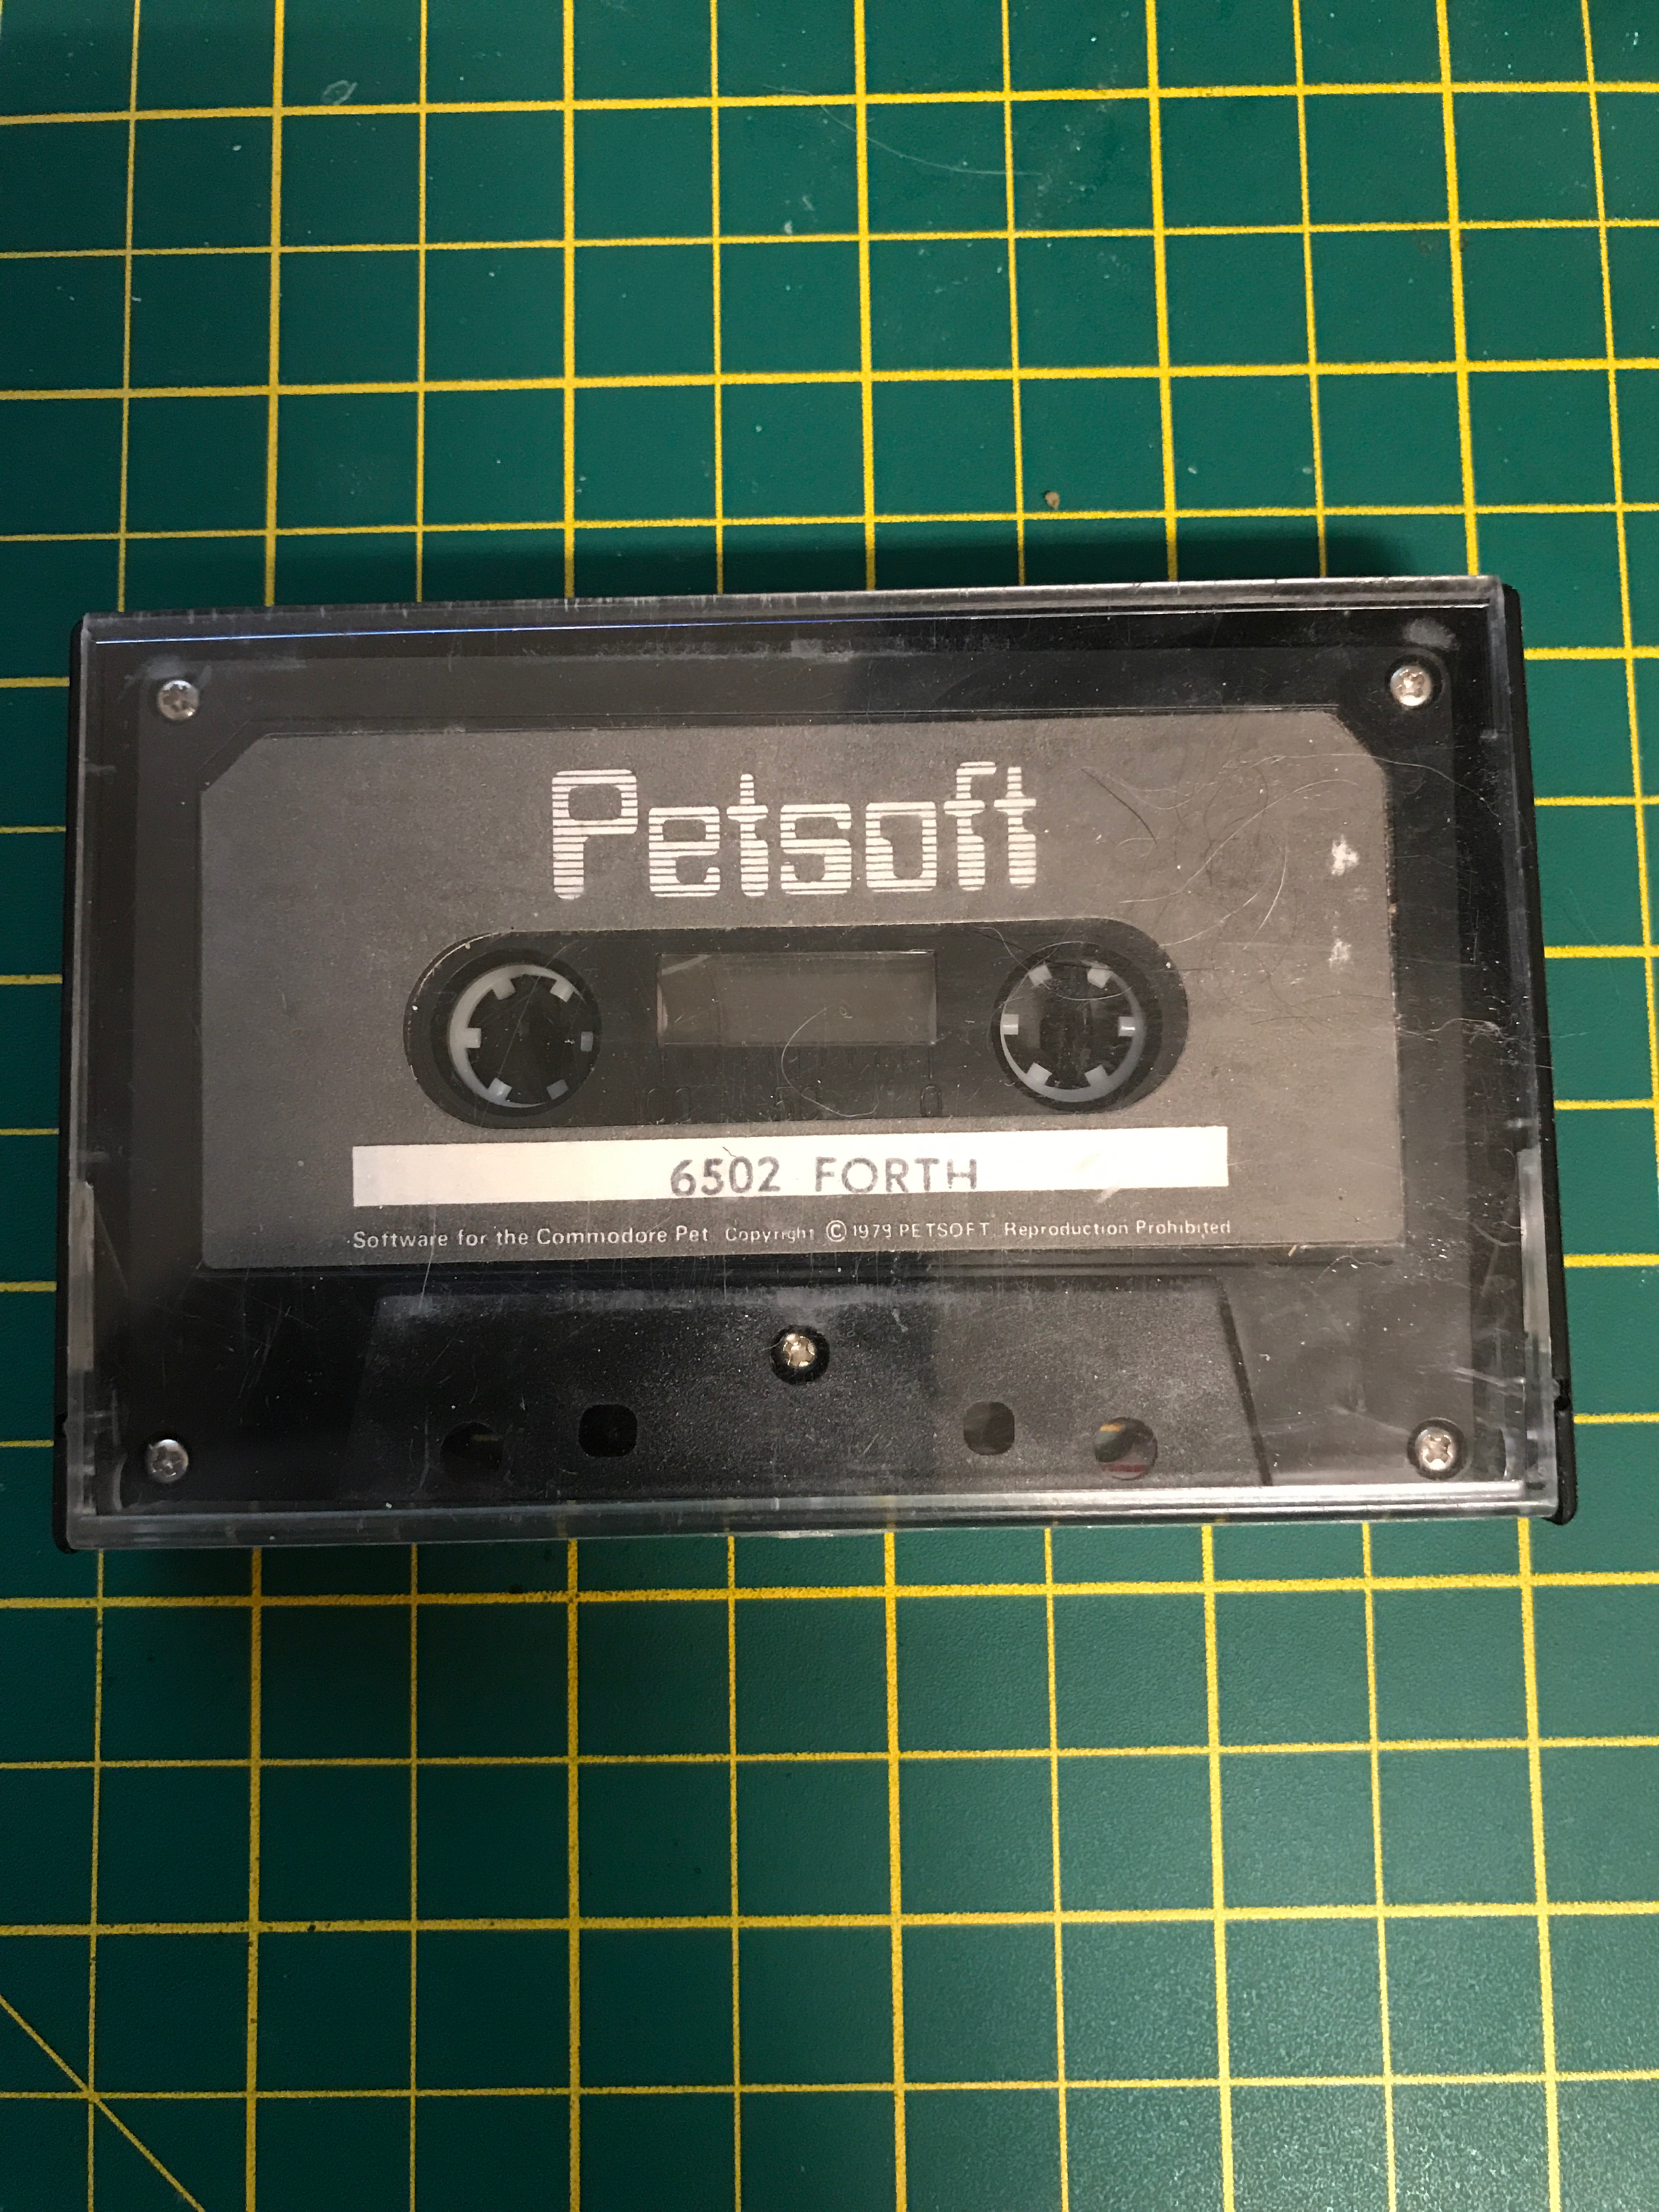 Original 1979 commodore pet tape software PET FORTH